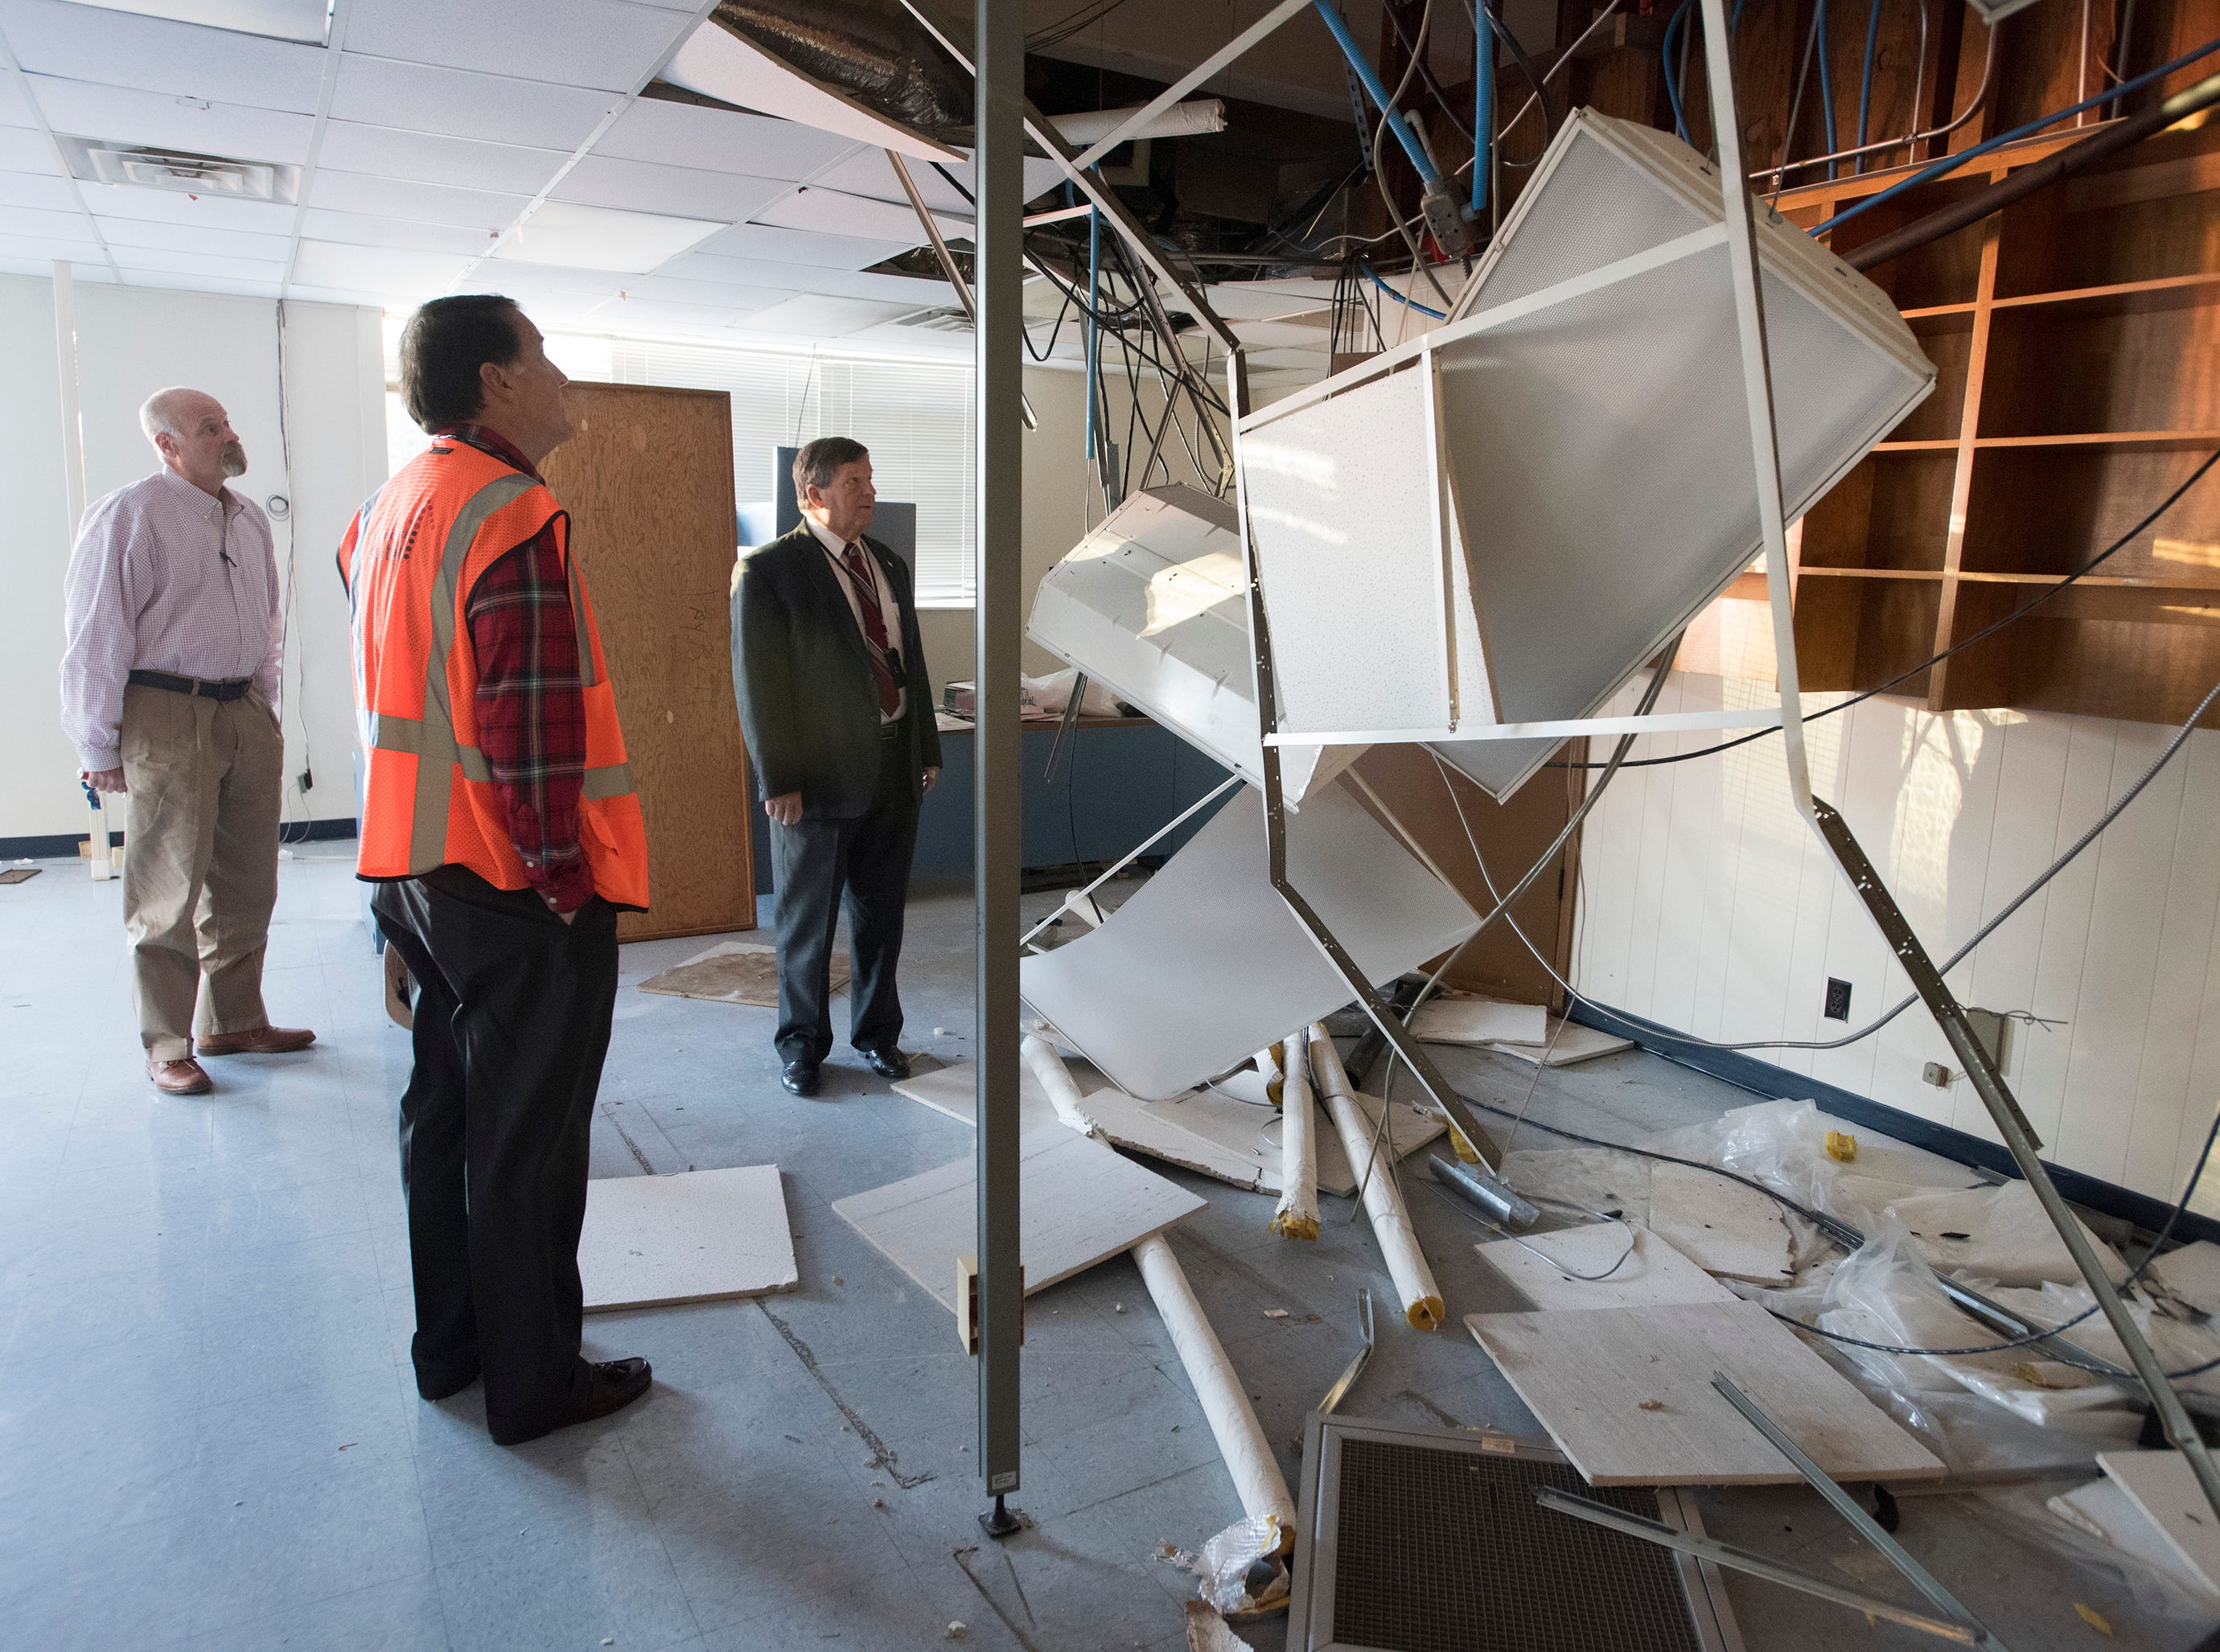 Real Estate Developer, Ed Carson, Escambia County School  Realtor, Danny Zimmern, and Superintendent, Malcolm Thomas, inspect the damage to the building from vandals during a tour of the old district headquarters building on Garden Street on Tuesday, Dec. 4, 2018. Developers want to build a 280-unit apartment complex on the school district site.